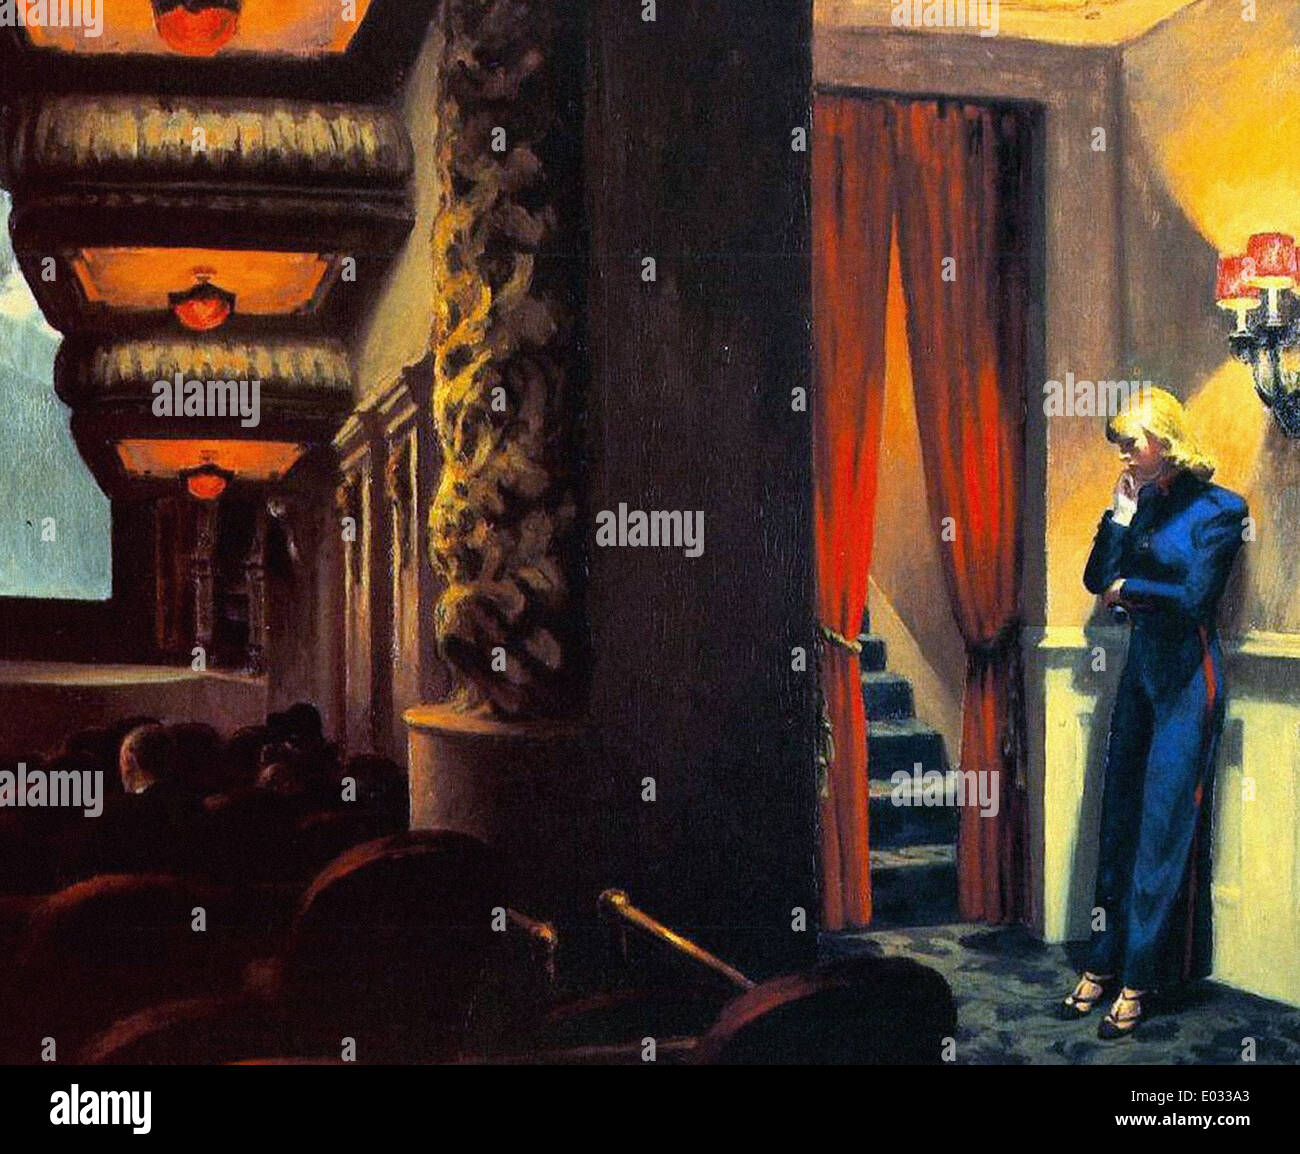 Edward Hopper New York Movie - Stock Image